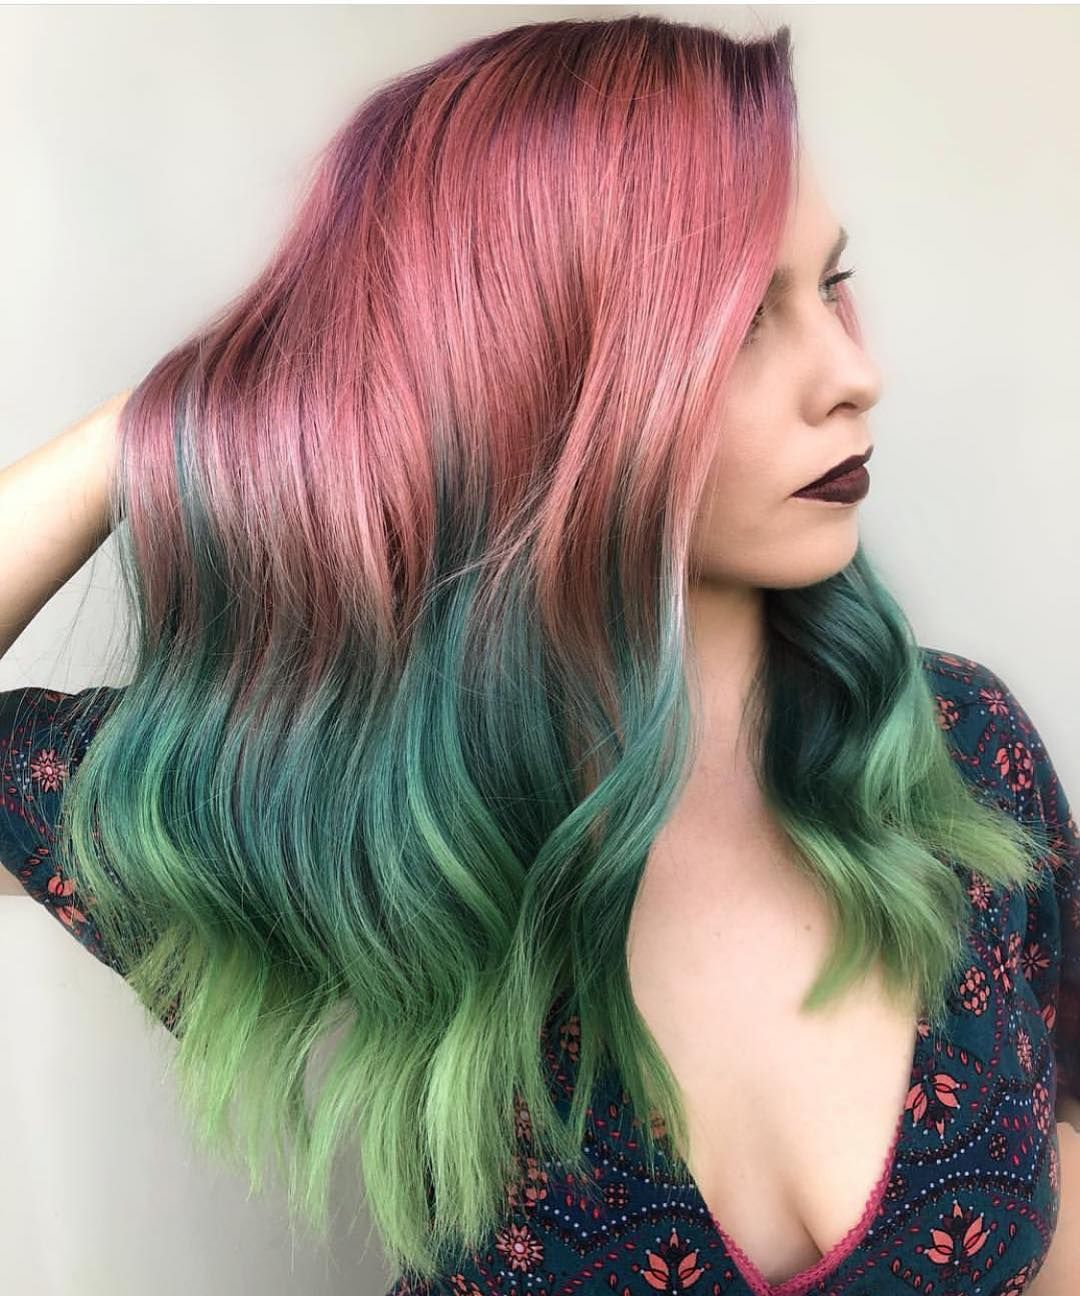 pindandelion on dyed hairstyles | pinterest | hair, hair color